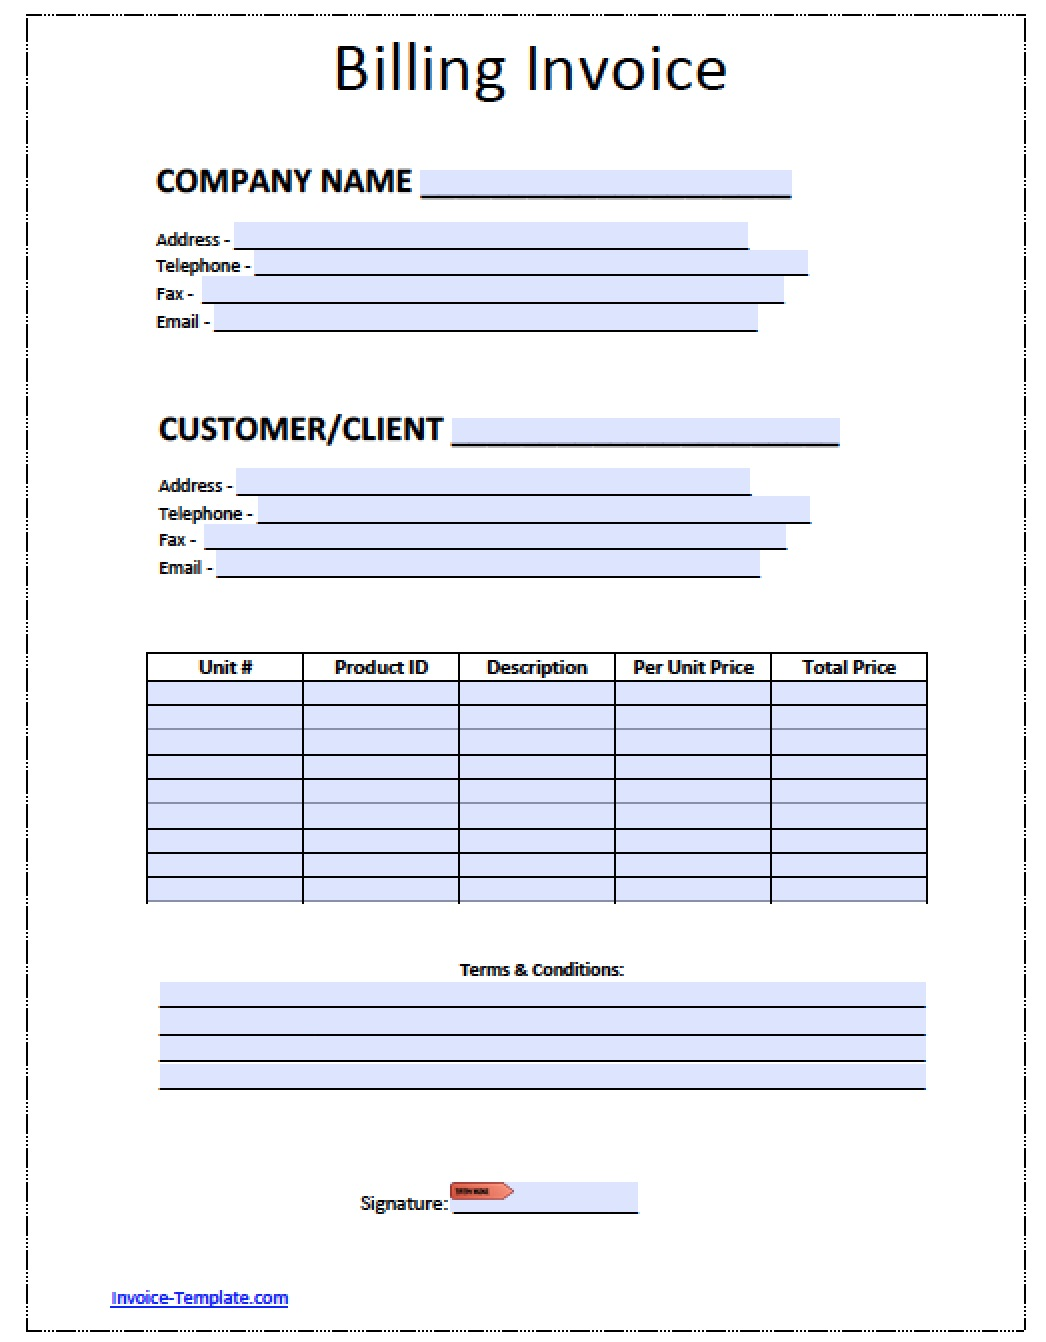 Coachoutletonlineplusus  Splendid Billing Invoice Invoices Faq U Cloudflare Support Billing  With Glamorous Free Billing Invoice Template  Excel  Pdf  Word Doc  Billing With Extraordinary Rent Receipt Template Word Also How To Request Read Receipt In Outlook In Addition Receipt Match And Portable Receipt Printer As Well As Lost Receipt Additionally Mobile Receipt Printer From Happytomco With Coachoutletonlineplusus  Glamorous Billing Invoice Invoices Faq U Cloudflare Support Billing  With Extraordinary Free Billing Invoice Template  Excel  Pdf  Word Doc  Billing And Splendid Rent Receipt Template Word Also How To Request Read Receipt In Outlook In Addition Receipt Match From Happytomco